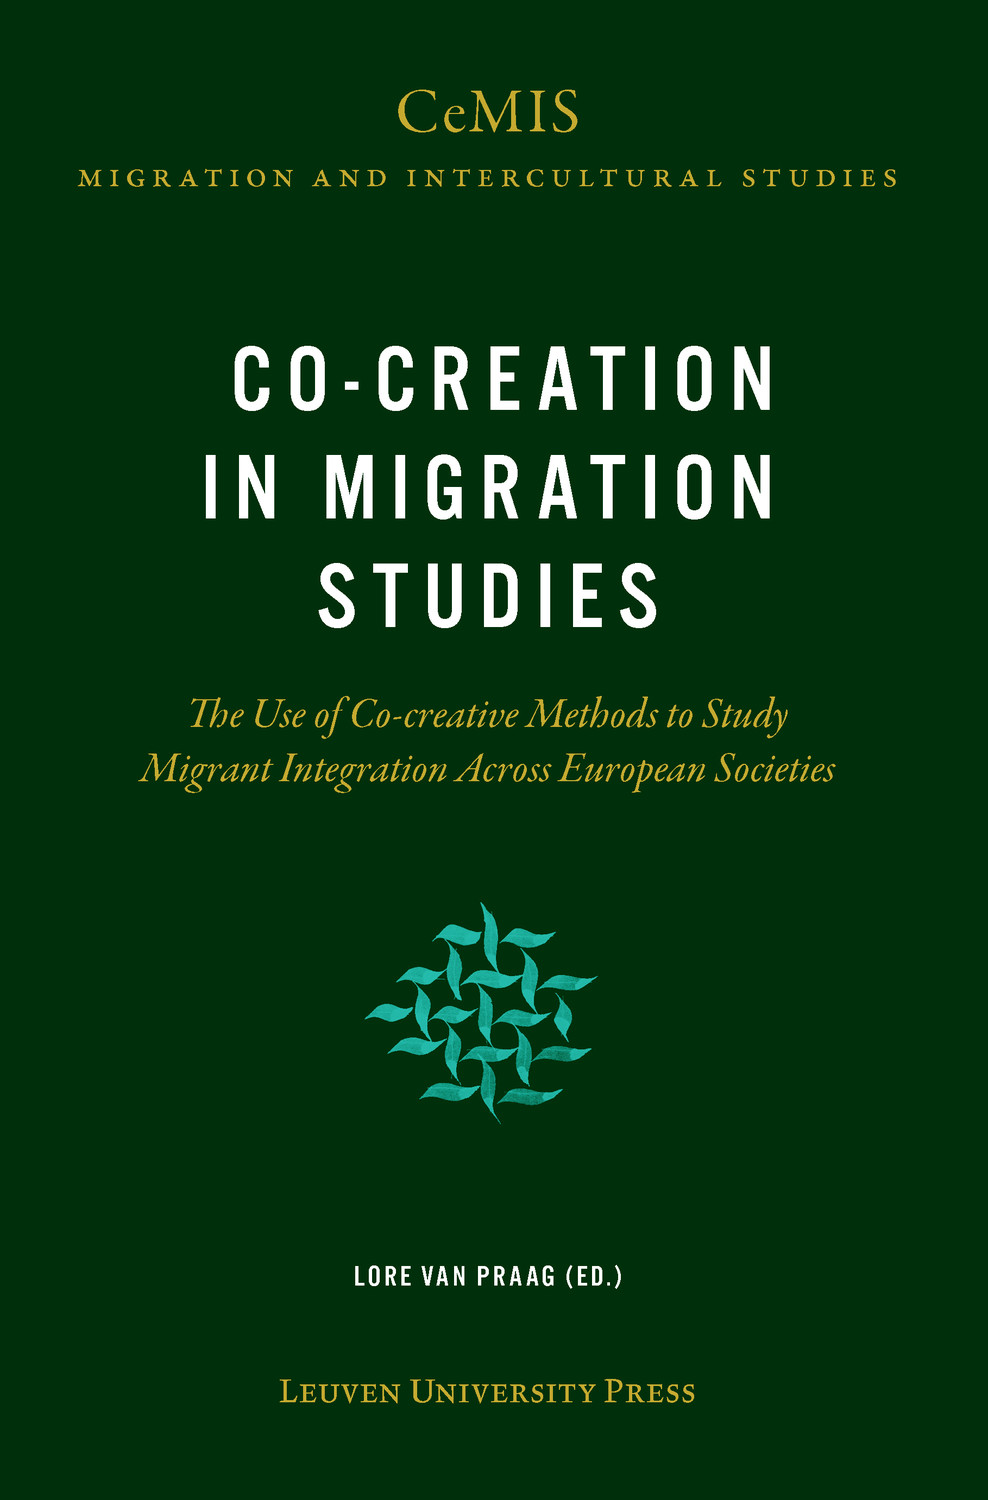 Co-creation in Migration Studies